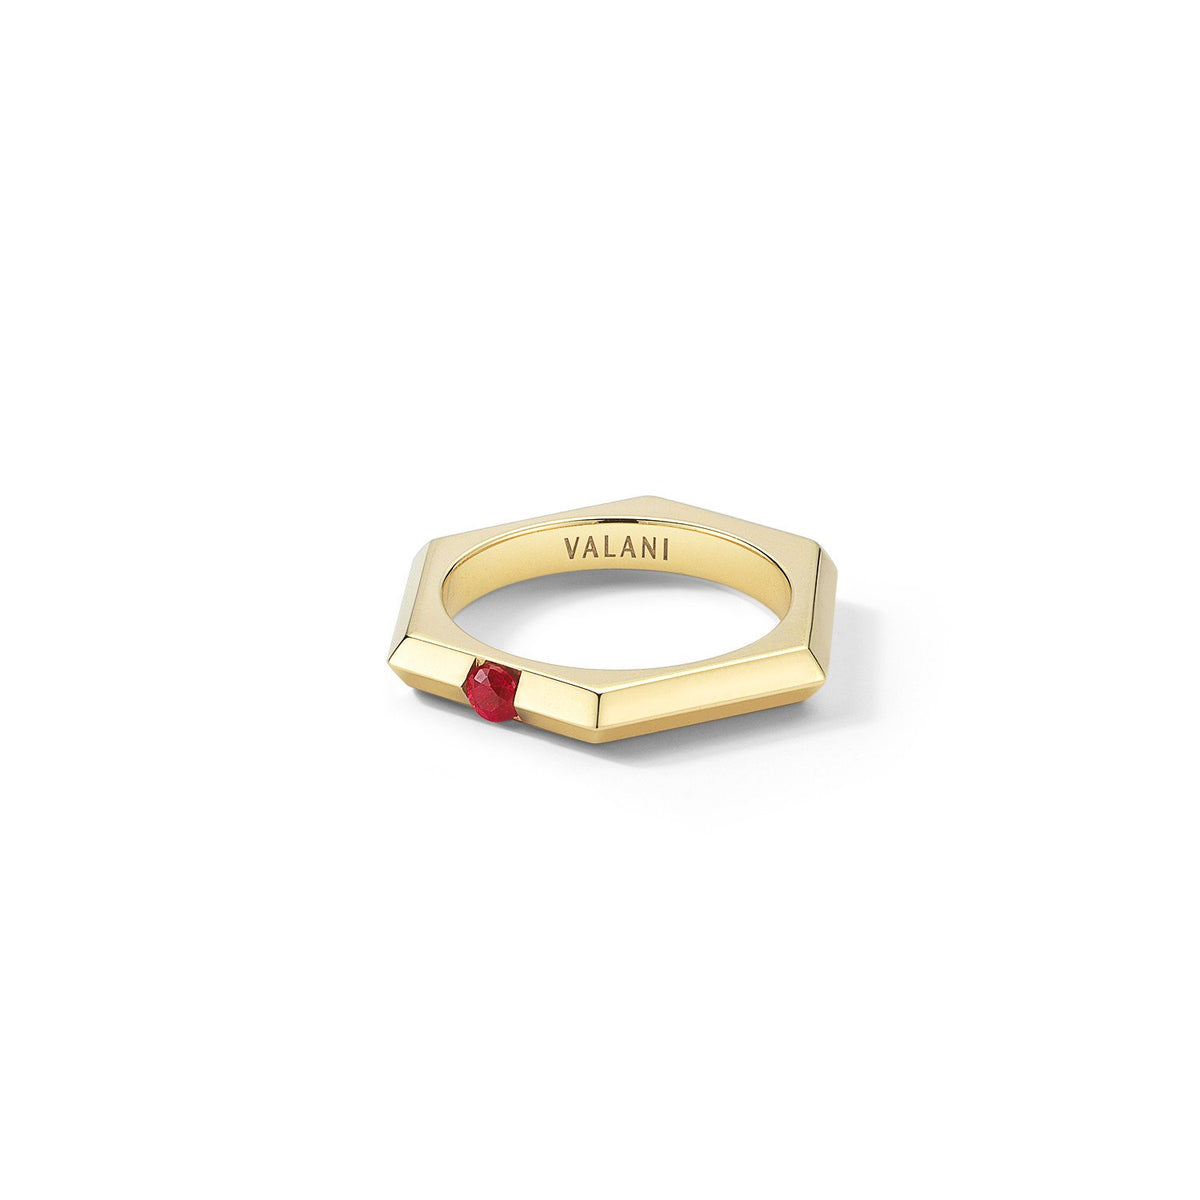 Valani 18K Yellow Gold Hexa I Ruby Ring